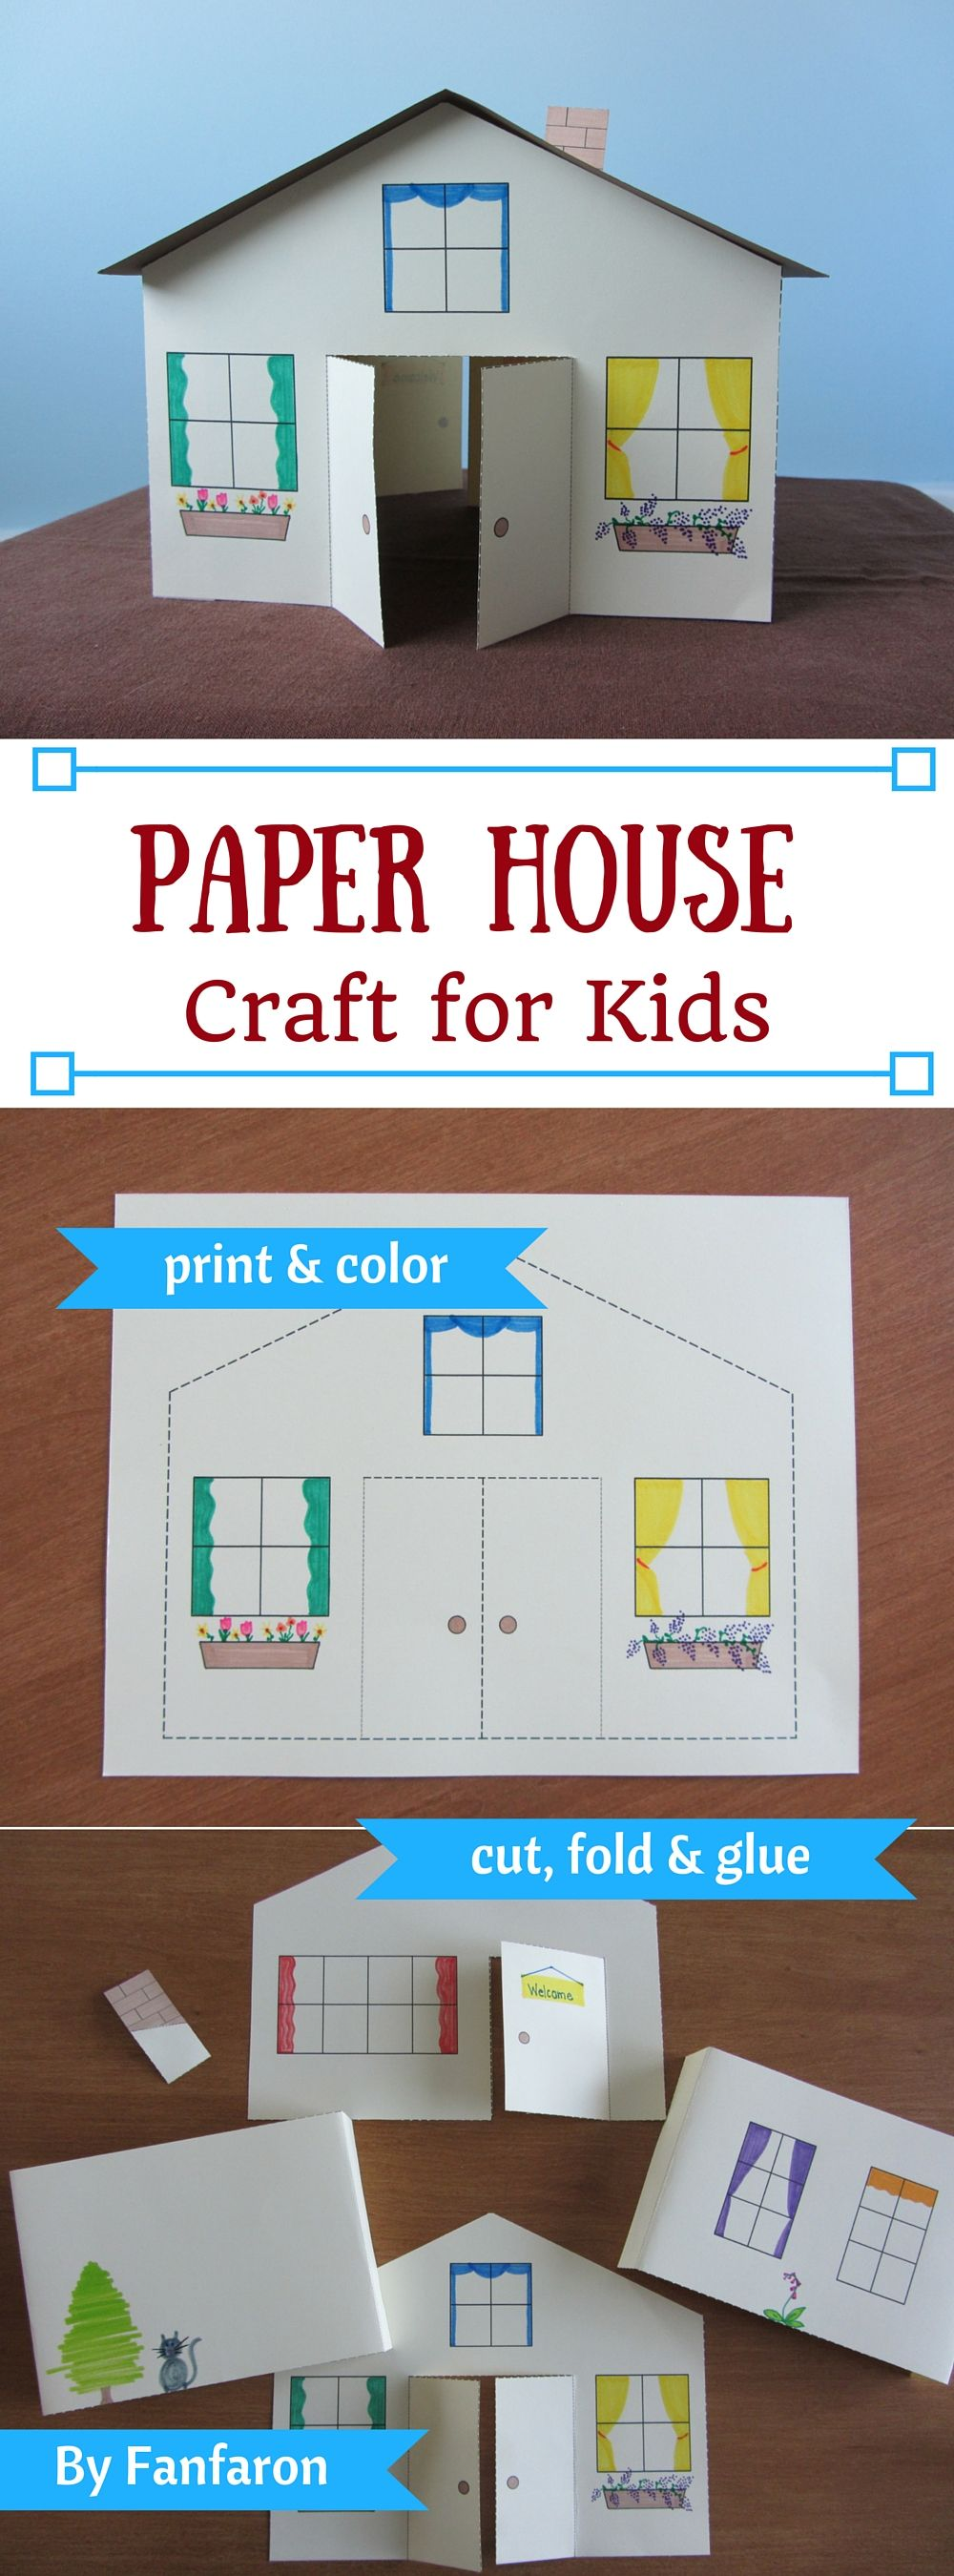 3D Paper House Craft for Kids  Instant Download Template. Fun Crafts For Your Home. Home Design Ideas